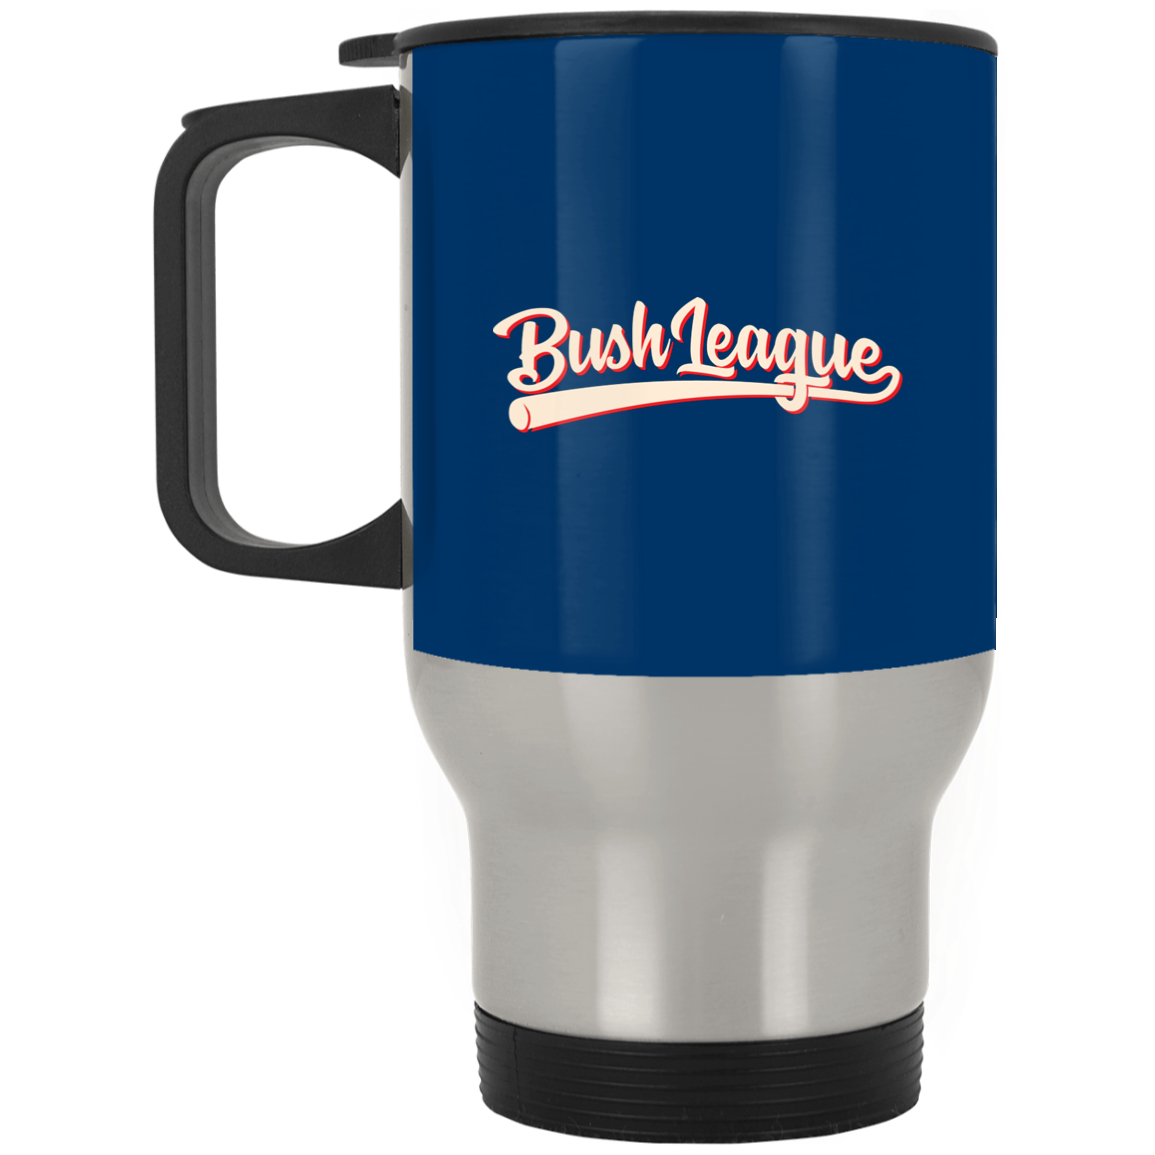 Bush League Stainless Mug